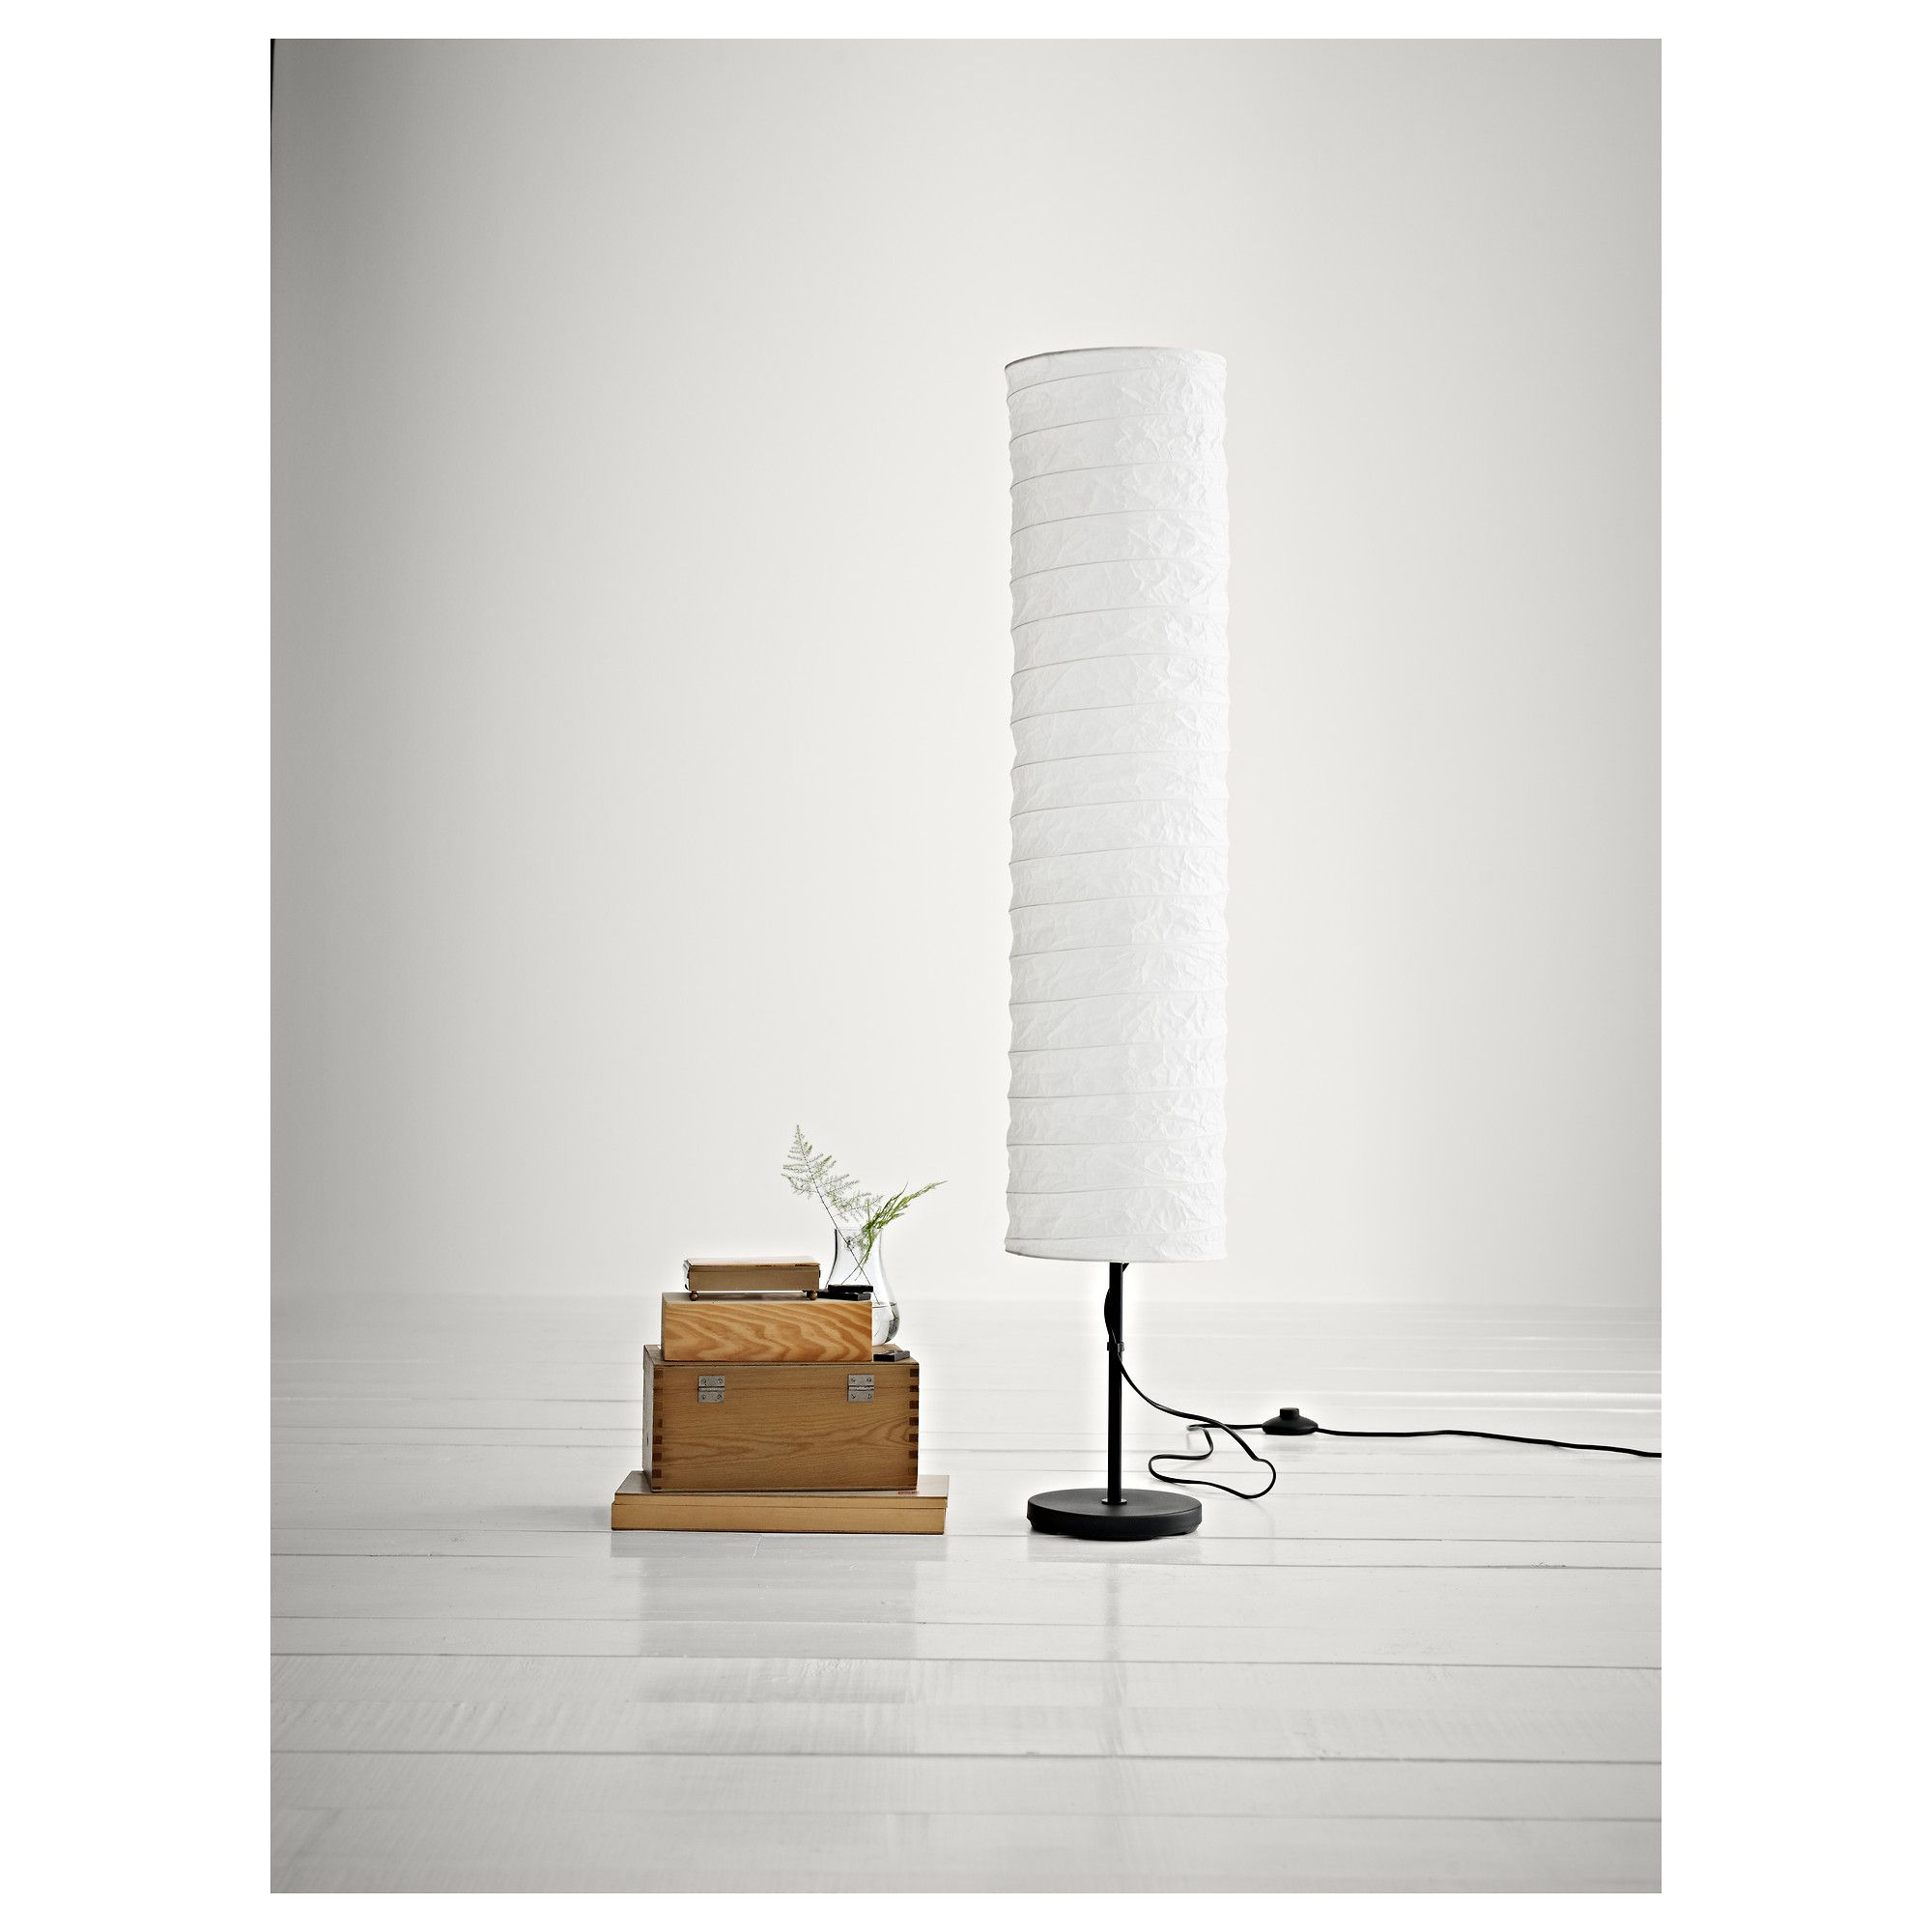 ikea floor lamp rice paper. HOLMO Φωτιστικό δαπέδου, Επιδαπέδια φωτιστικά - IKEA. Home FurnitureRice PaperIkea Floor LampFloor Ikea Lamp Rice Paper A